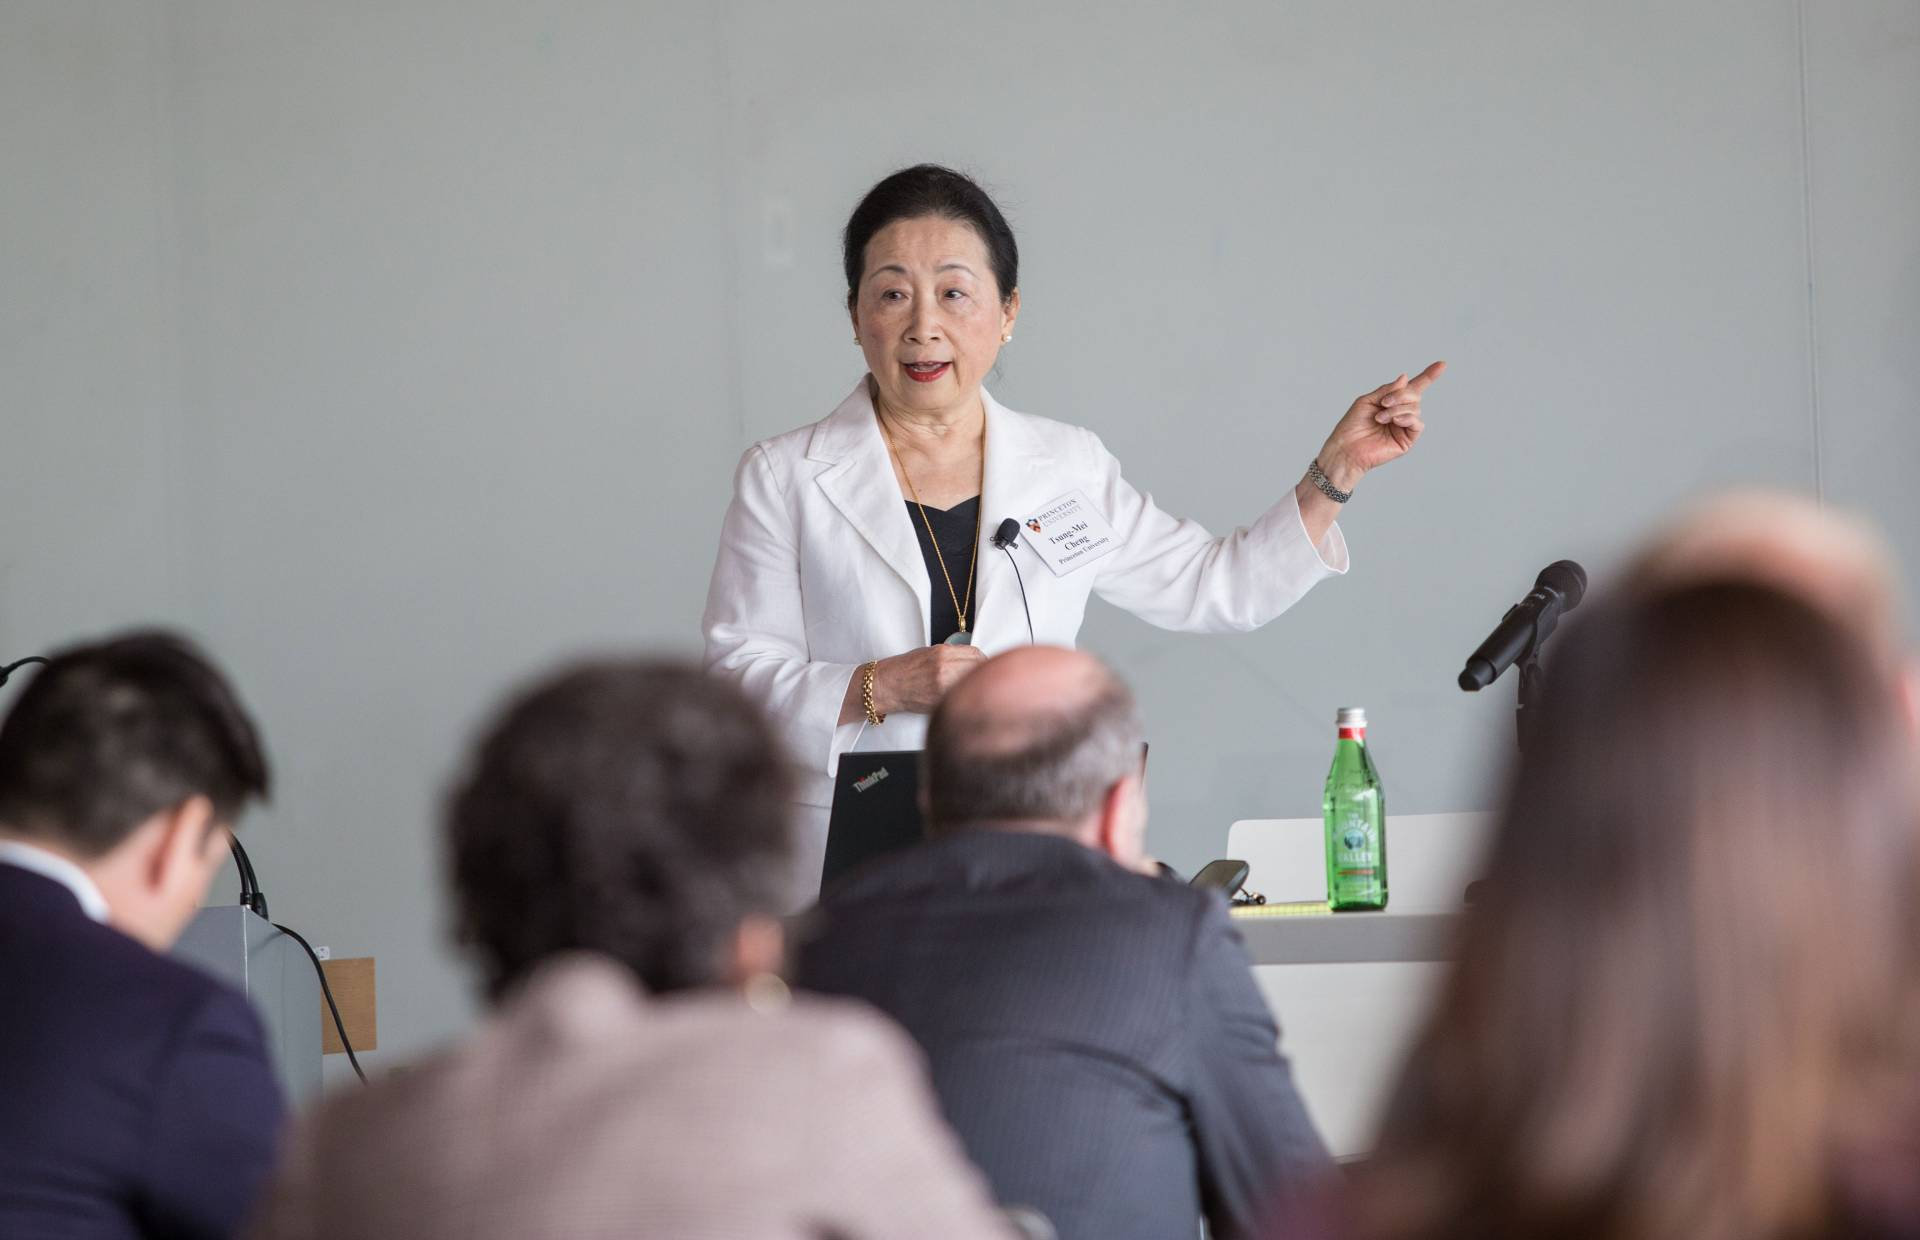 Tsung-Mei Cheng speaks in front of an audience